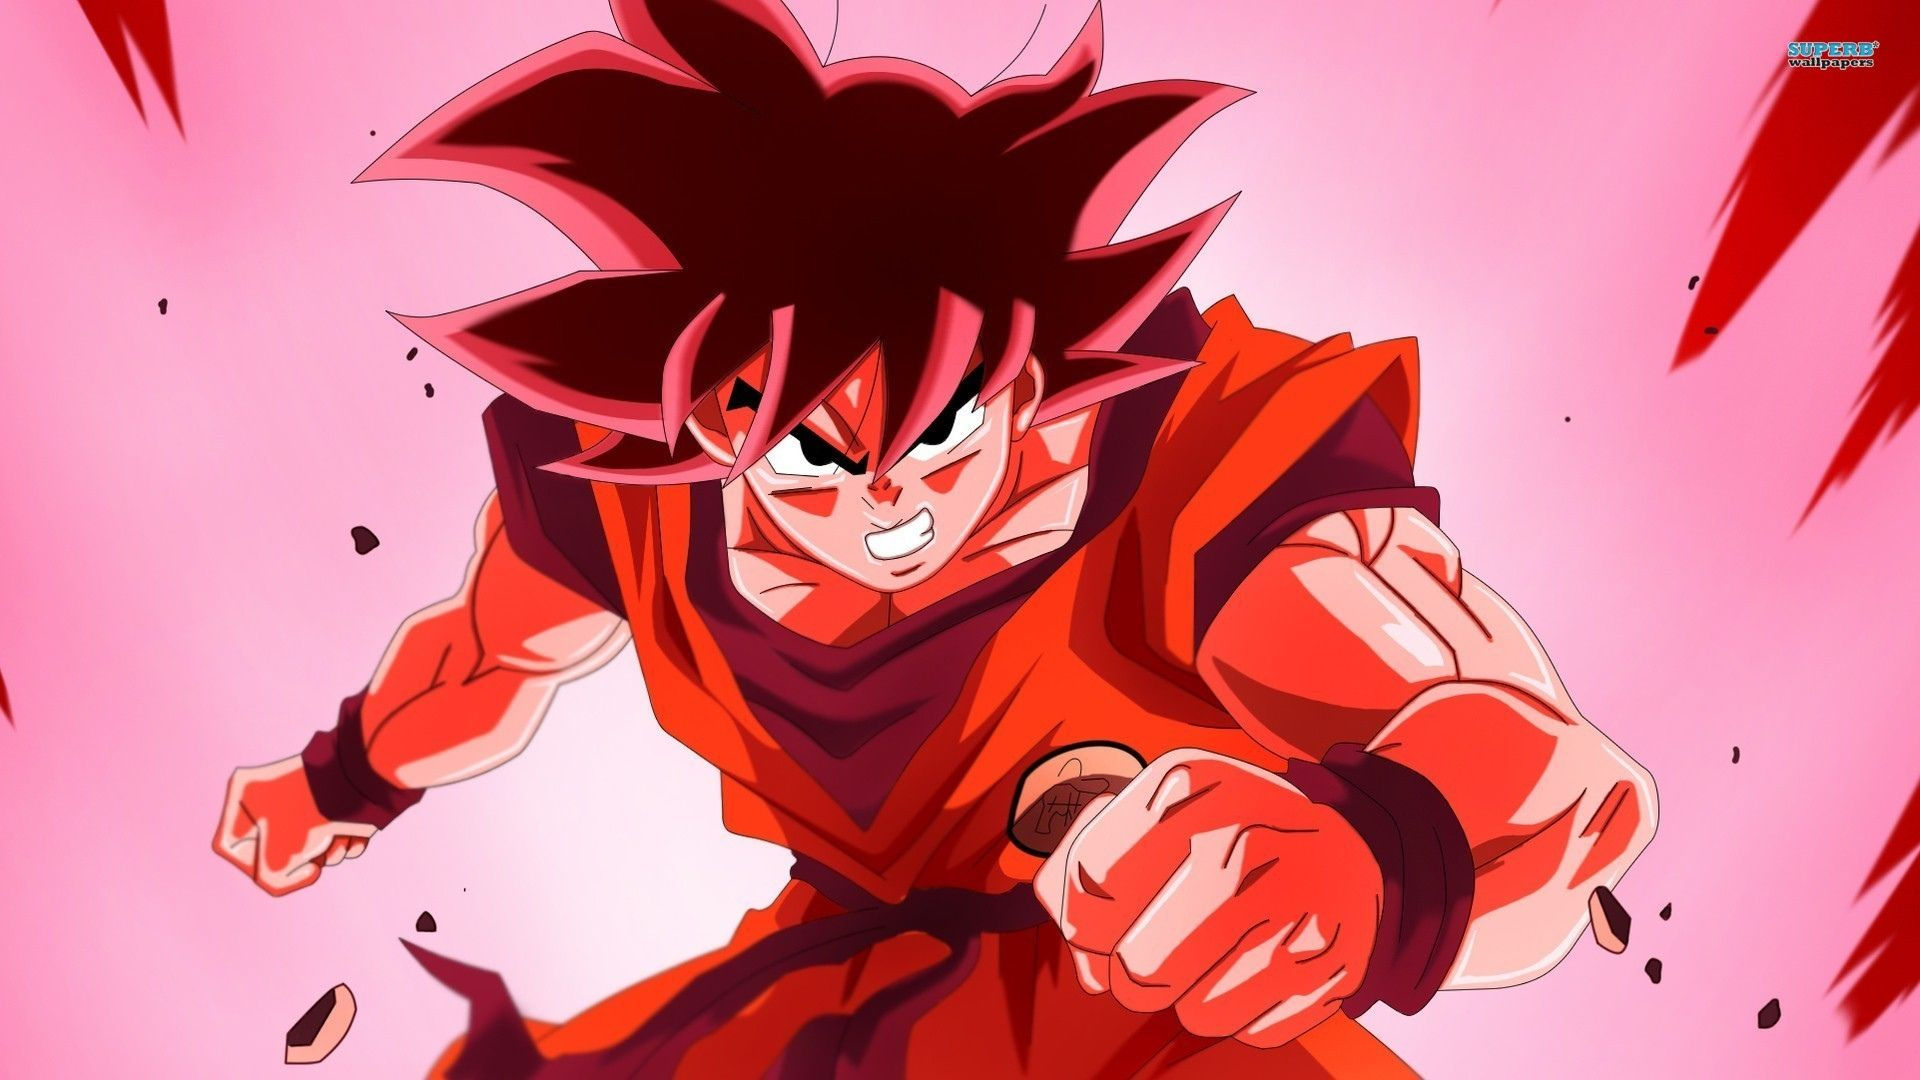 Anime Dragon Ball Z Goku Dragon Ball Fondo De Pantalla Personajes De Dragon Ball Imagenes De Goku Vegeta Wallpaper